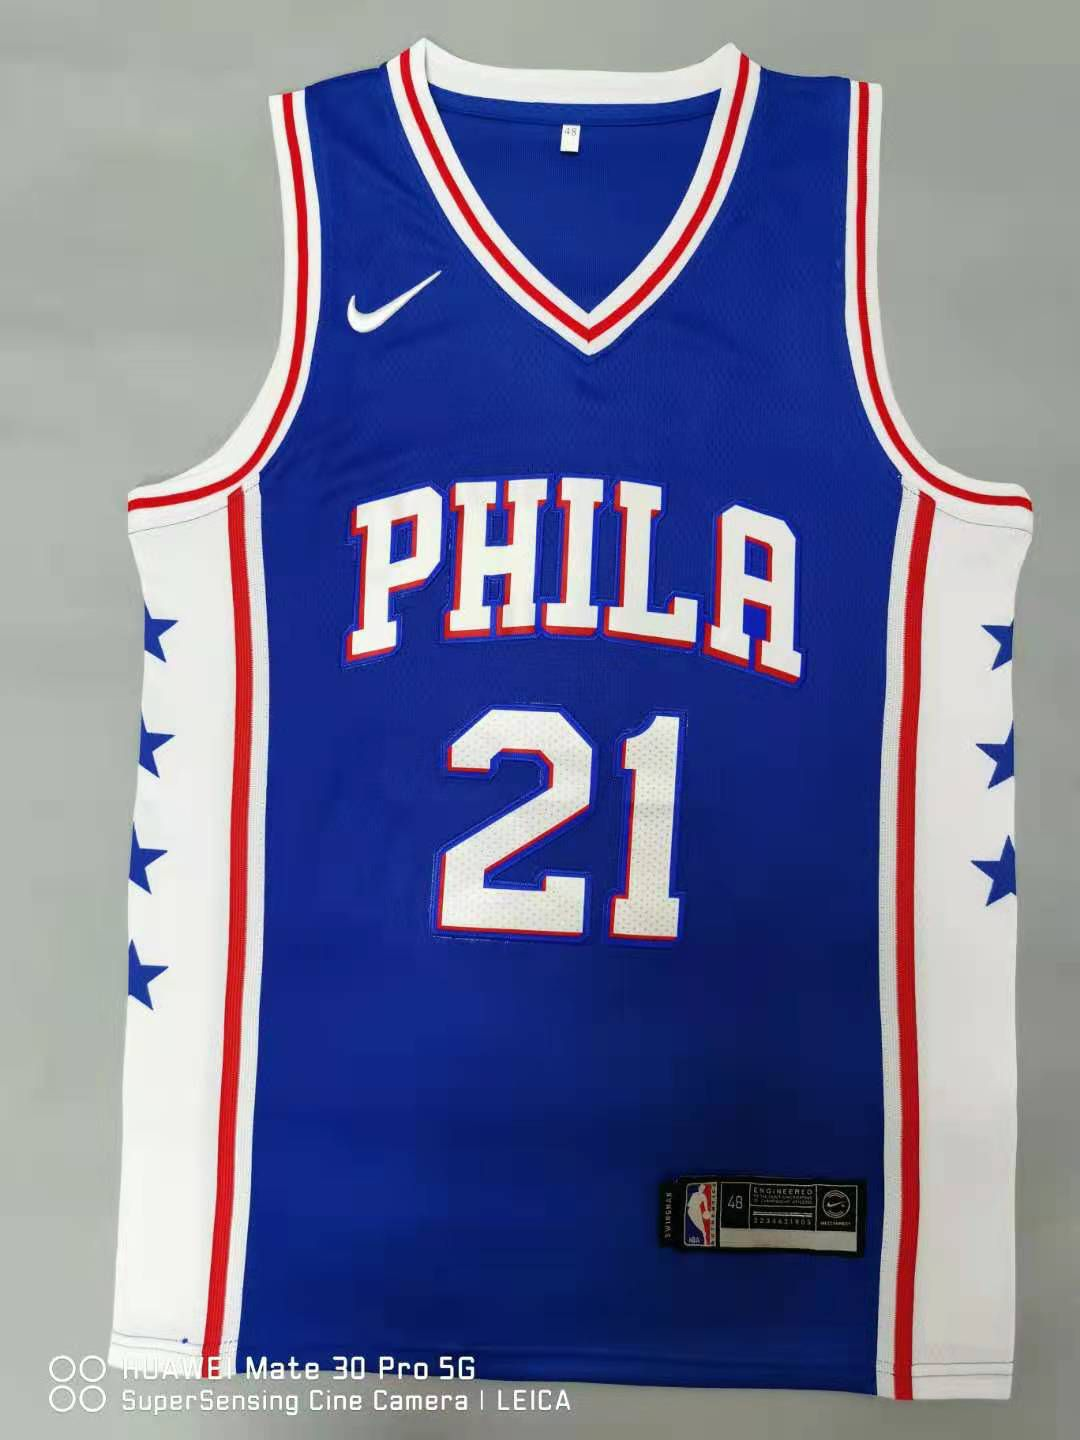 Cheap Men Philadelphia 76ers 21 Embiid Blue 2021 Nike Game NBA Jersey